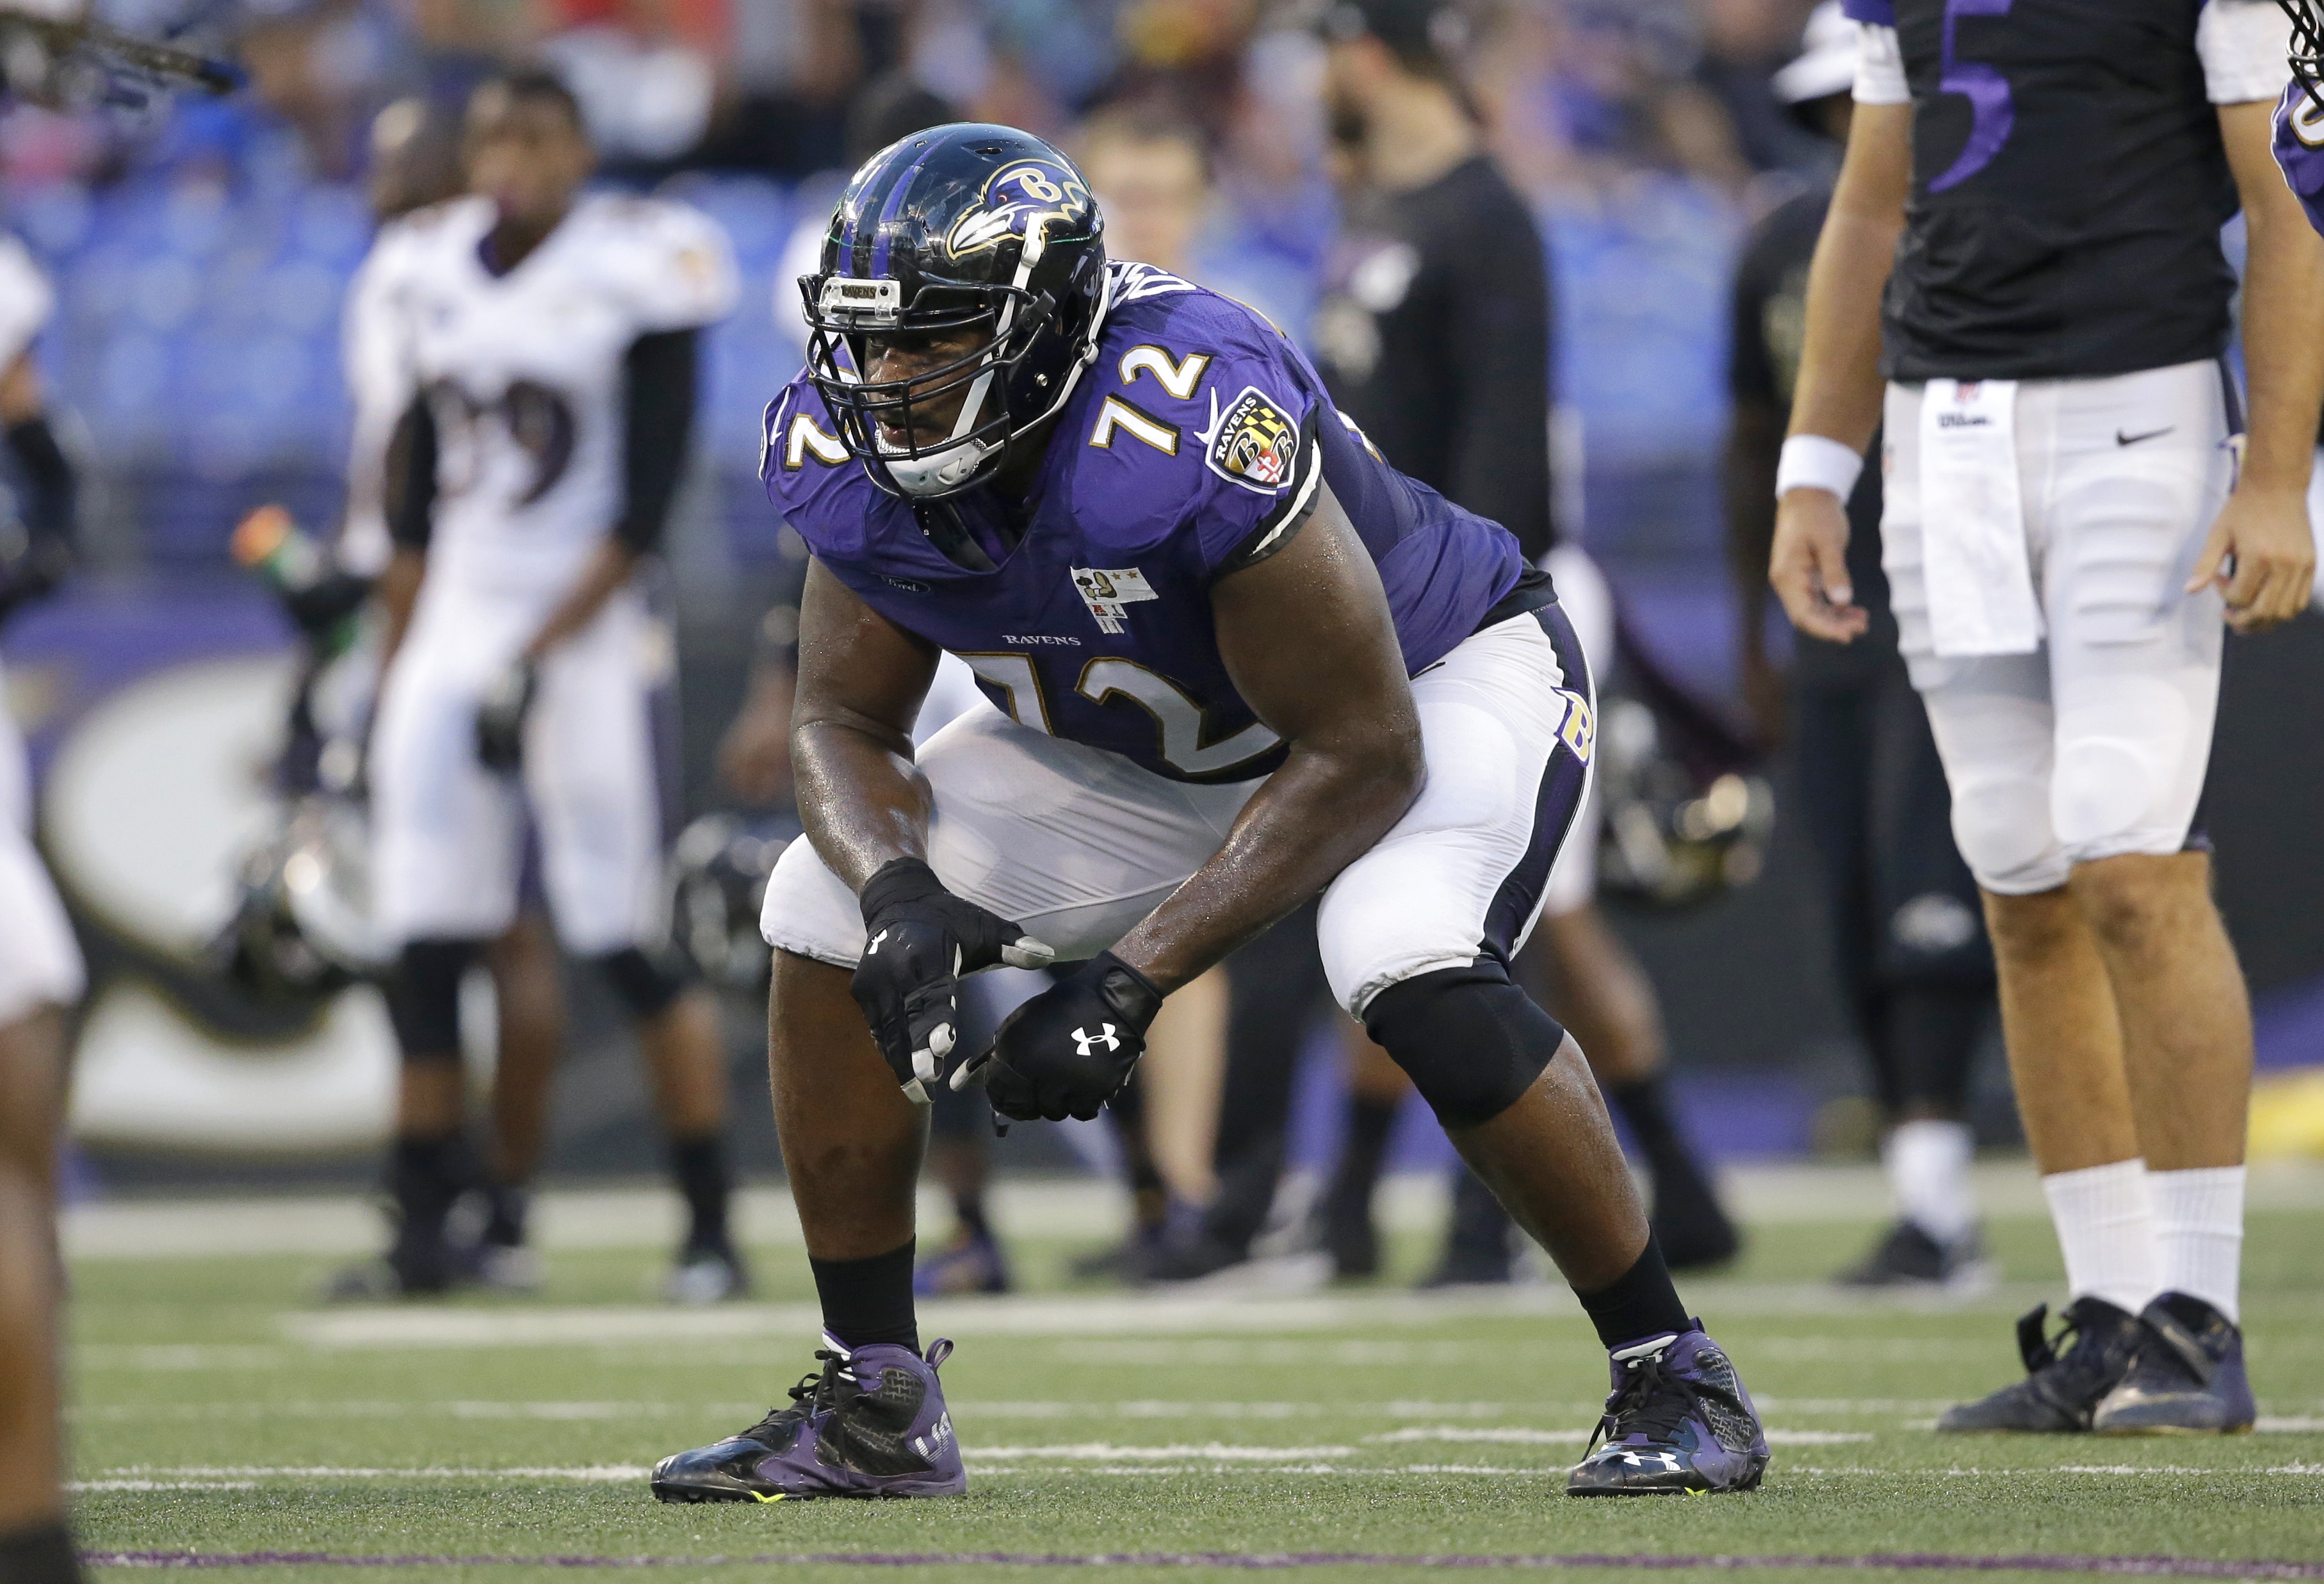 FILE - In this Aug. 3, 2015, file photo, Baltimore Ravens guard Kelechi Osemele lines up for a play during NFL football training camp, in Baltimore. If Kelechi Osemele can excel at left tackle in place of the injured Eugene Monroe over the next three week